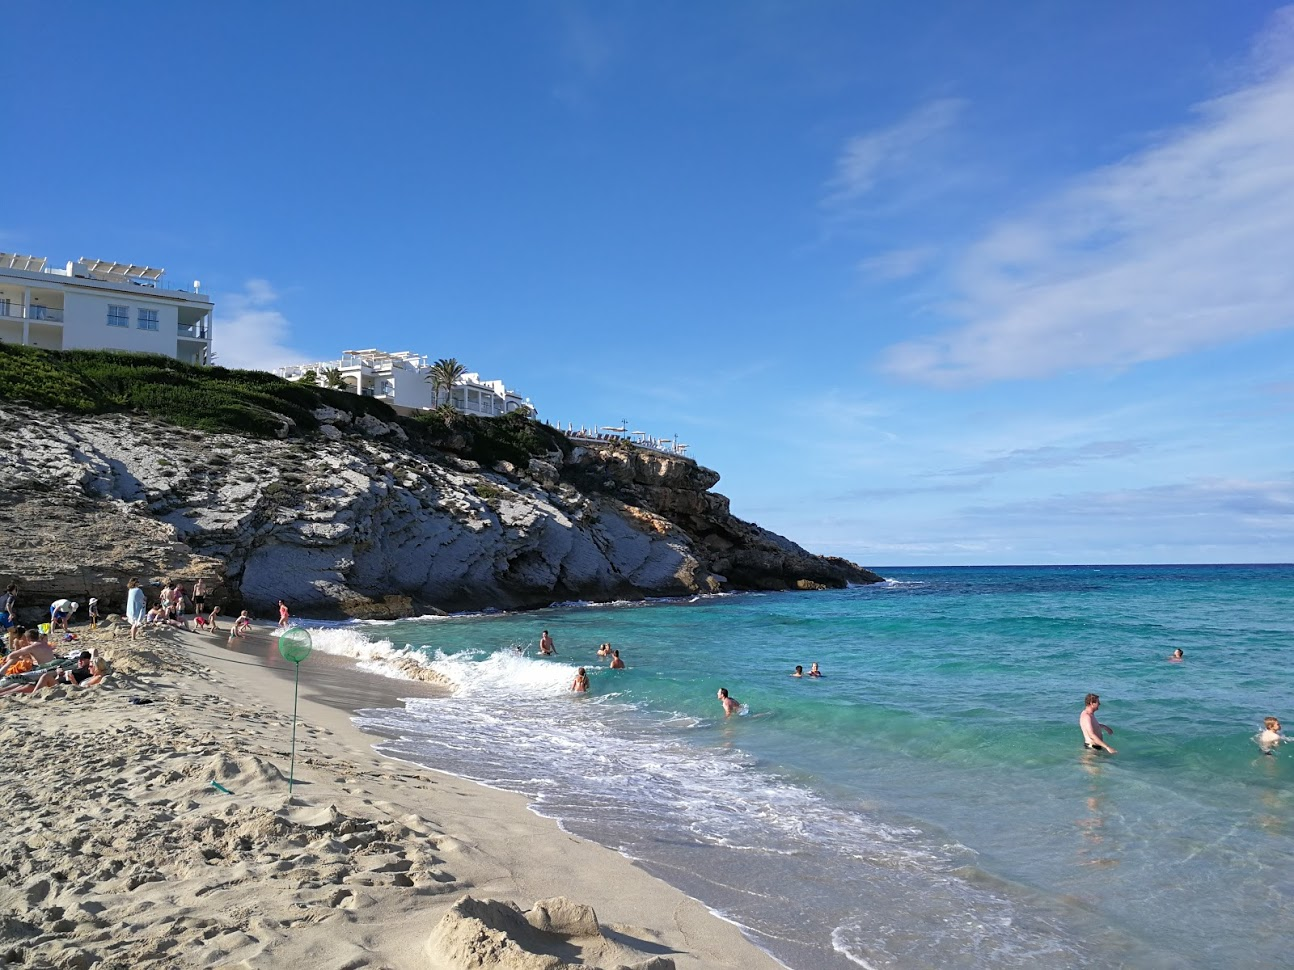 Cala Mesquida in Mallorca. A beautiful beach with soft white sand and clear water